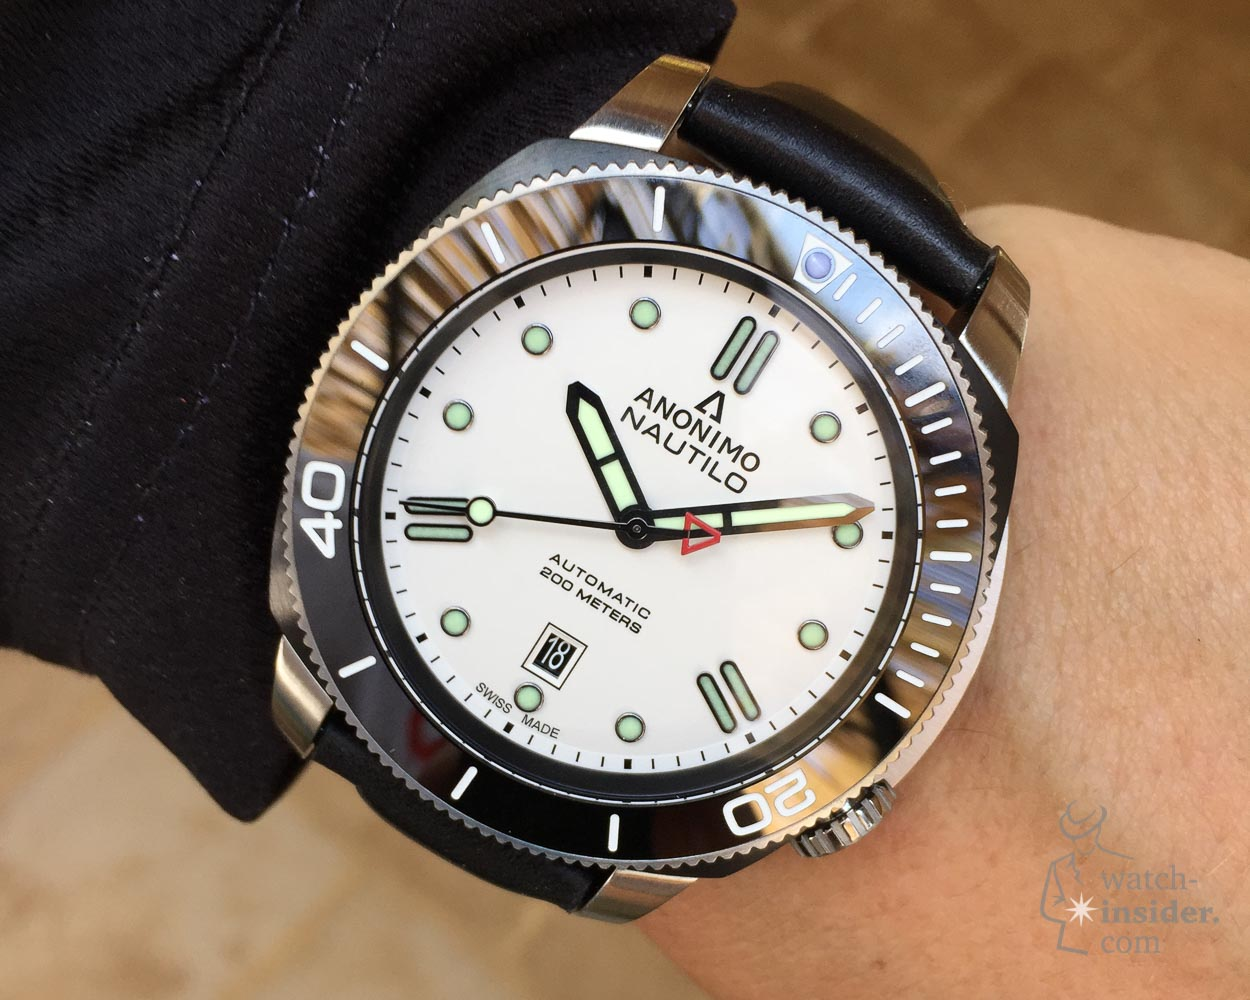 New version of the Anonimo Nautilo bianco